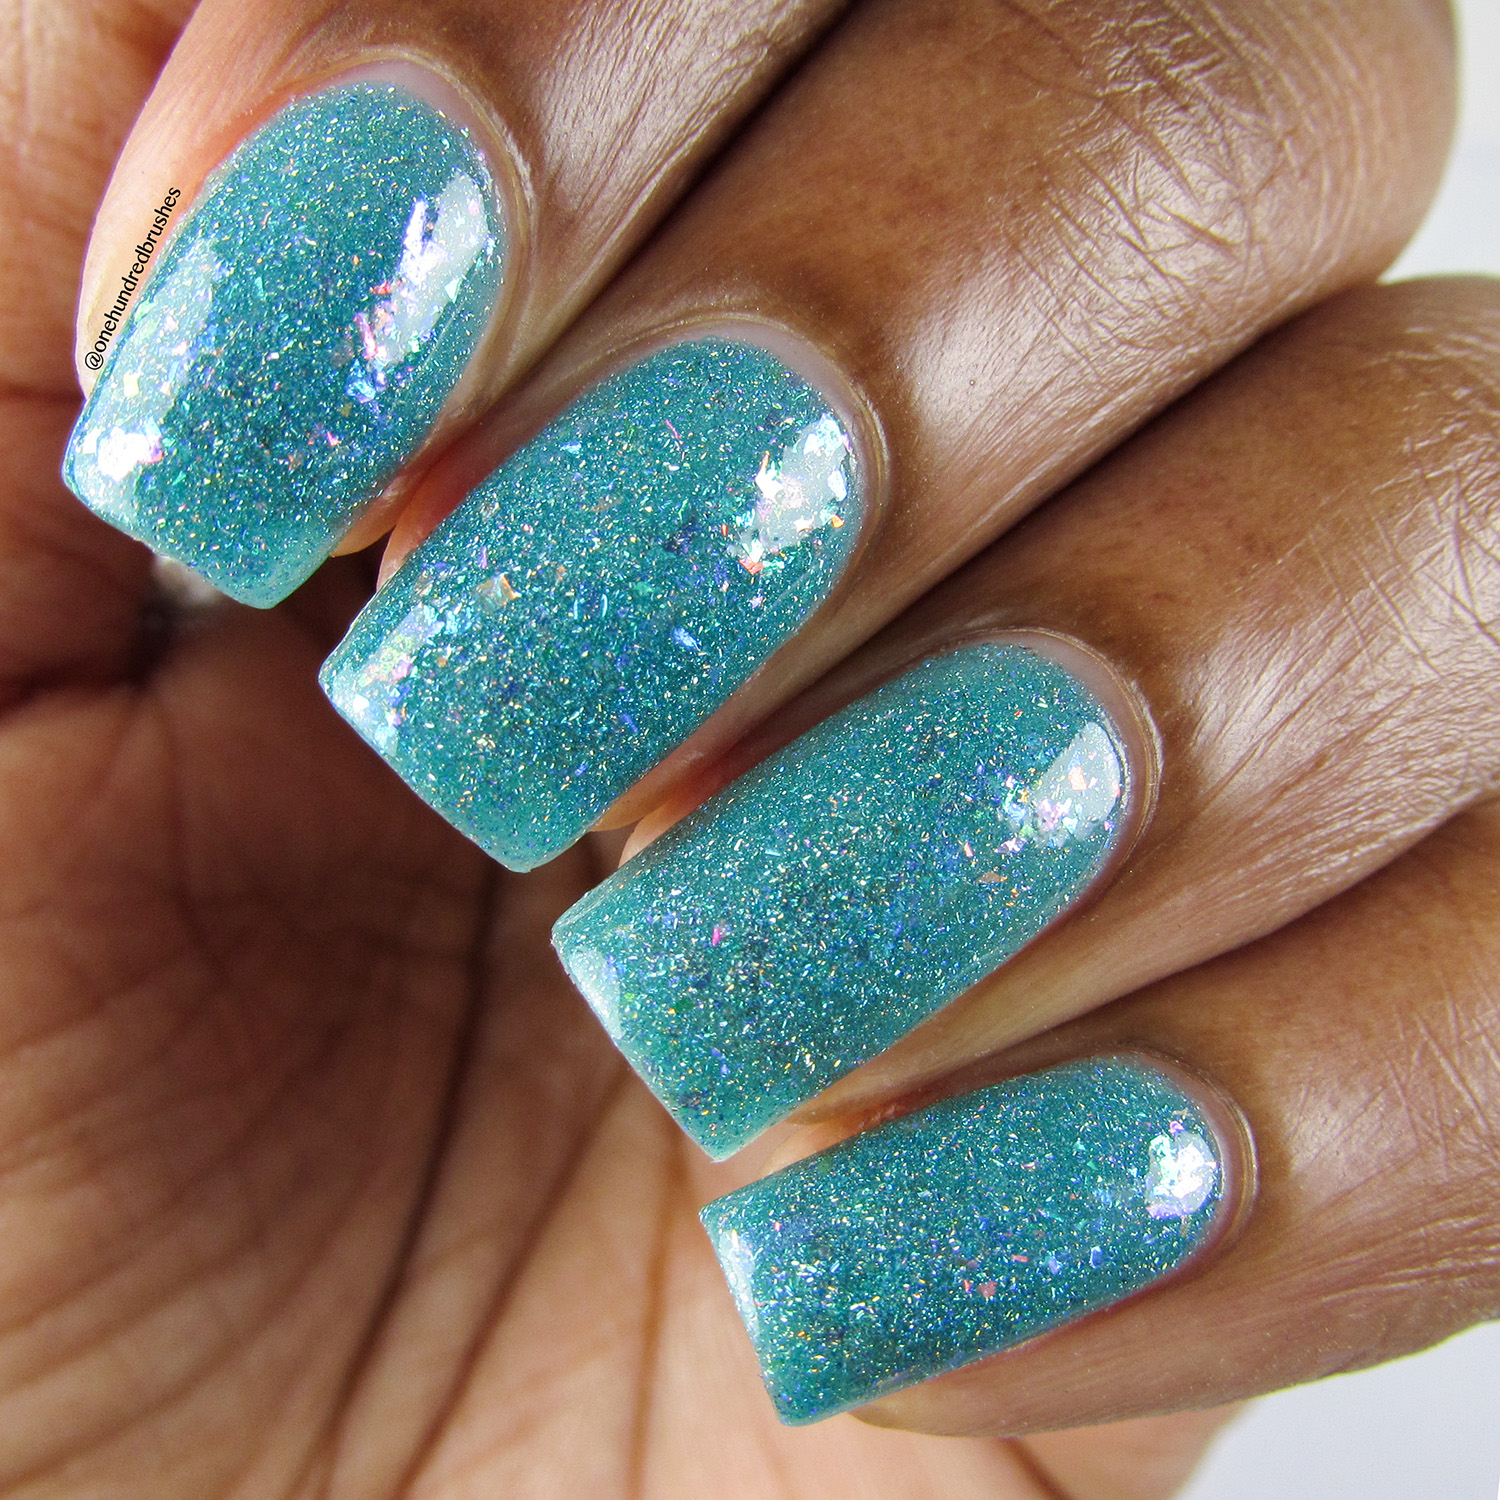 Hubble'd Together - Closeup - KBShimmer - Polish Pickup April 2018 - glow in the dark - jelly polish - unicorn flakes